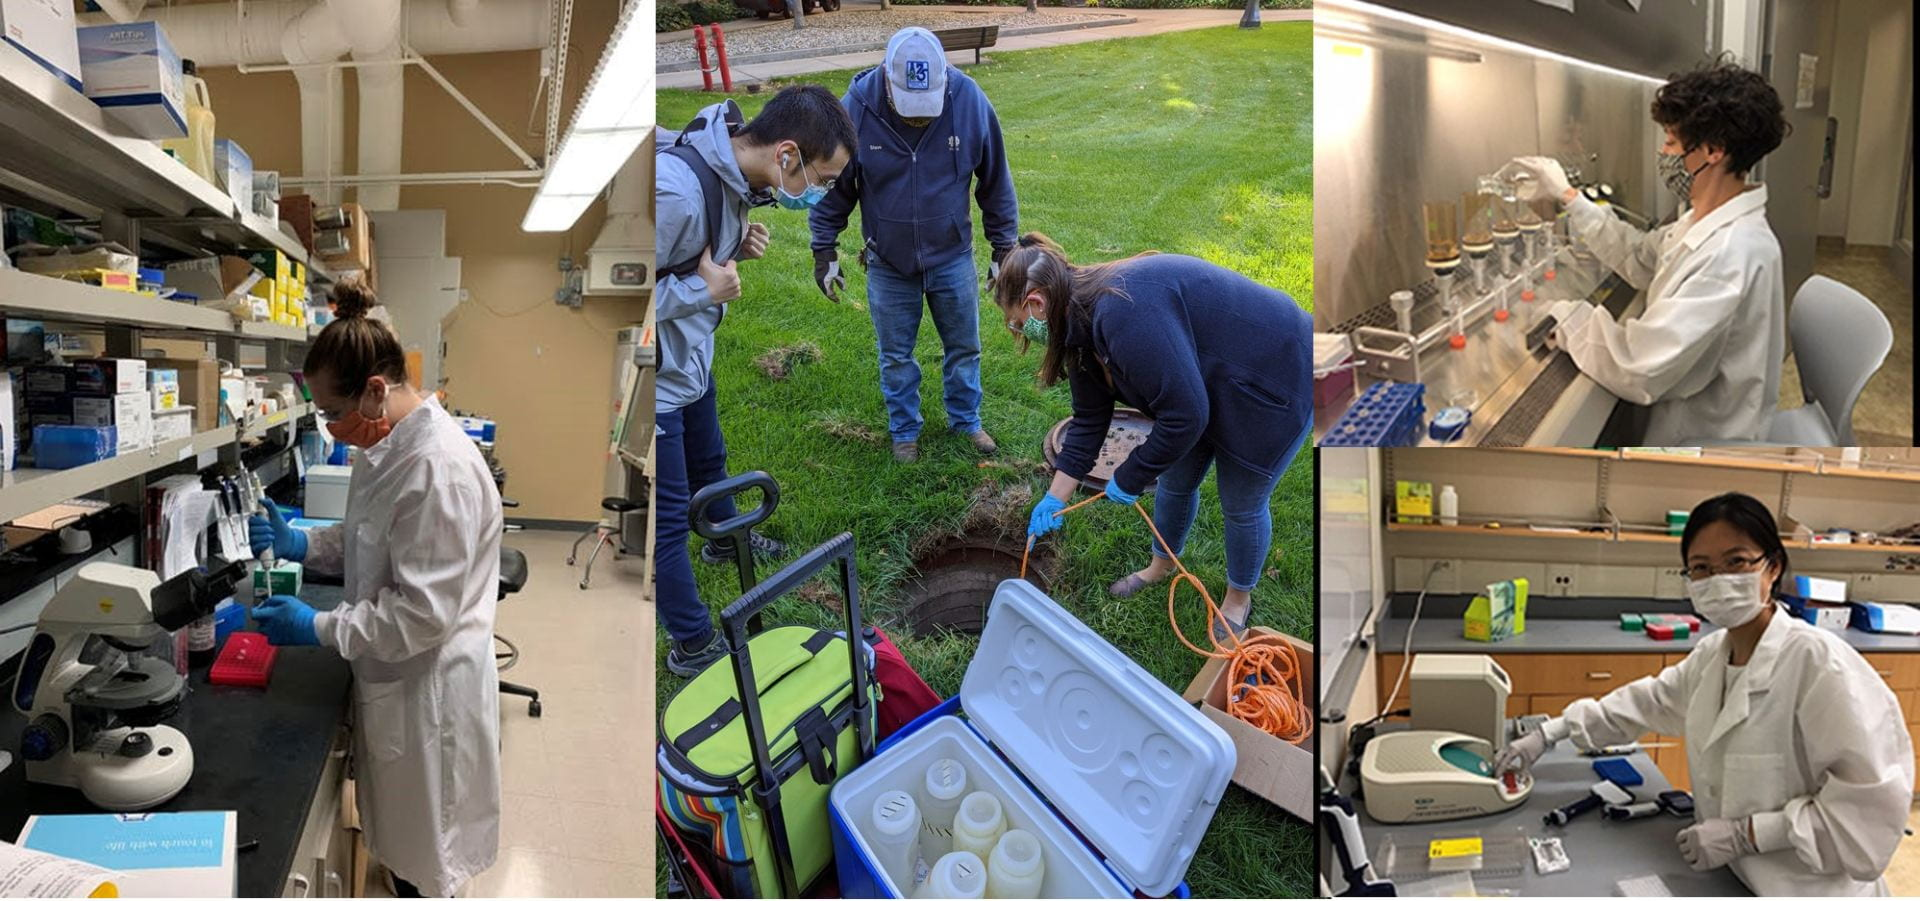 Researchers sampling and processing wastewater for SARS-CoV-2